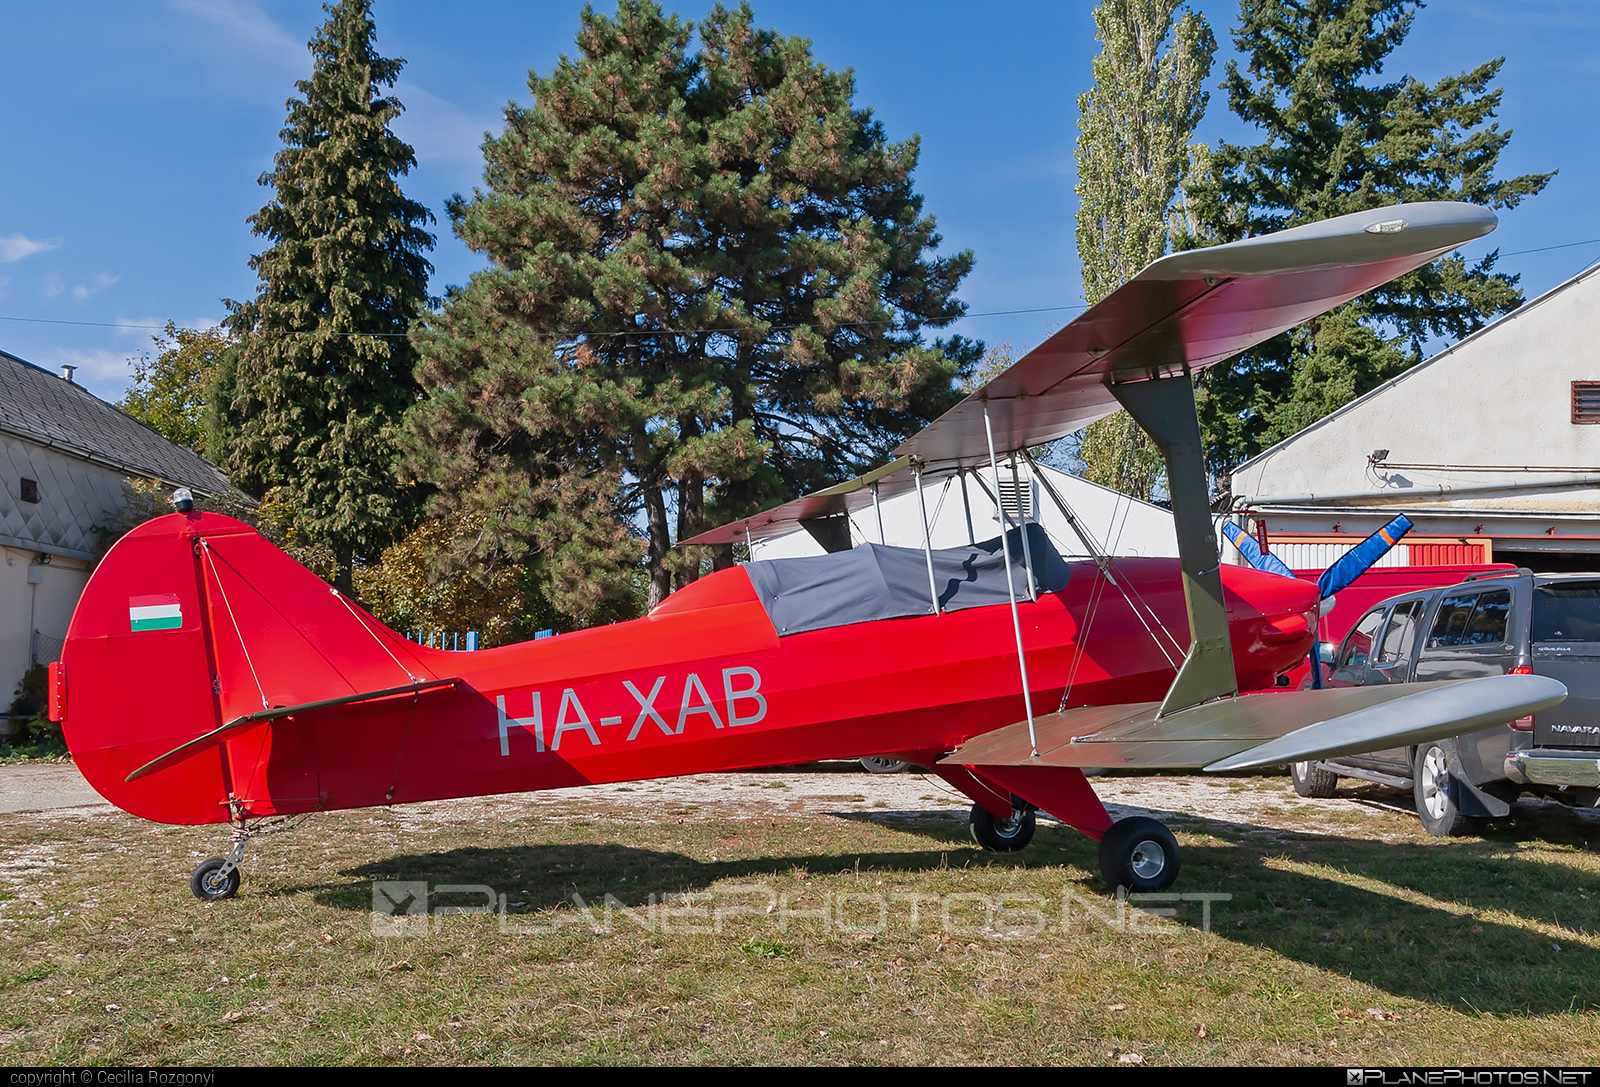 Tiger Cup Developments Sherwood Ranger XP - HA-XAB operated by Private operator #sherwoodranger #sherwoodrangerxp #tigercupdevelopments